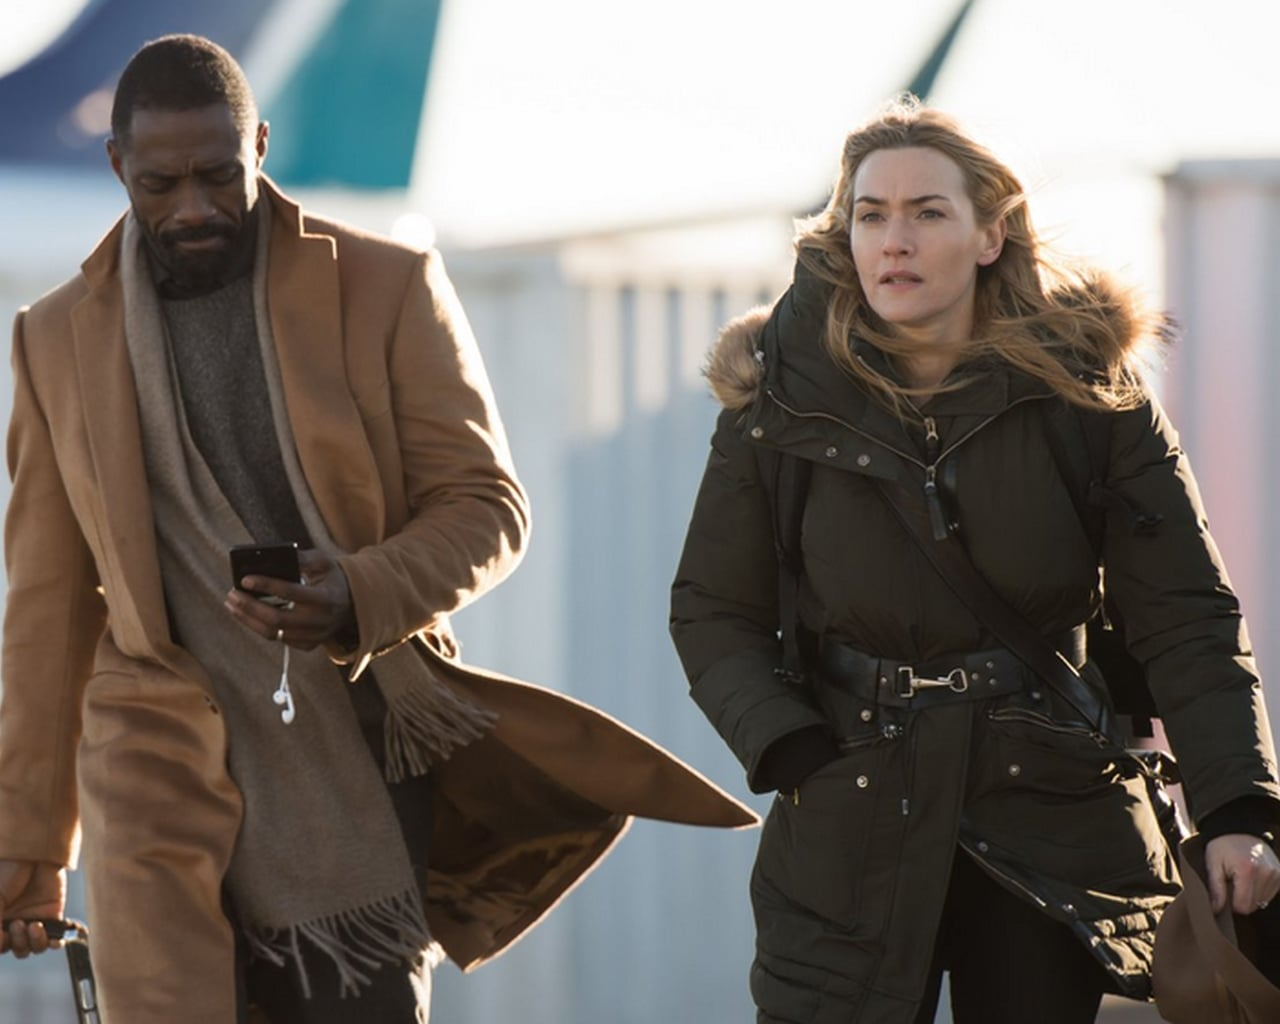 Idris Elba and Kate Winslet star in